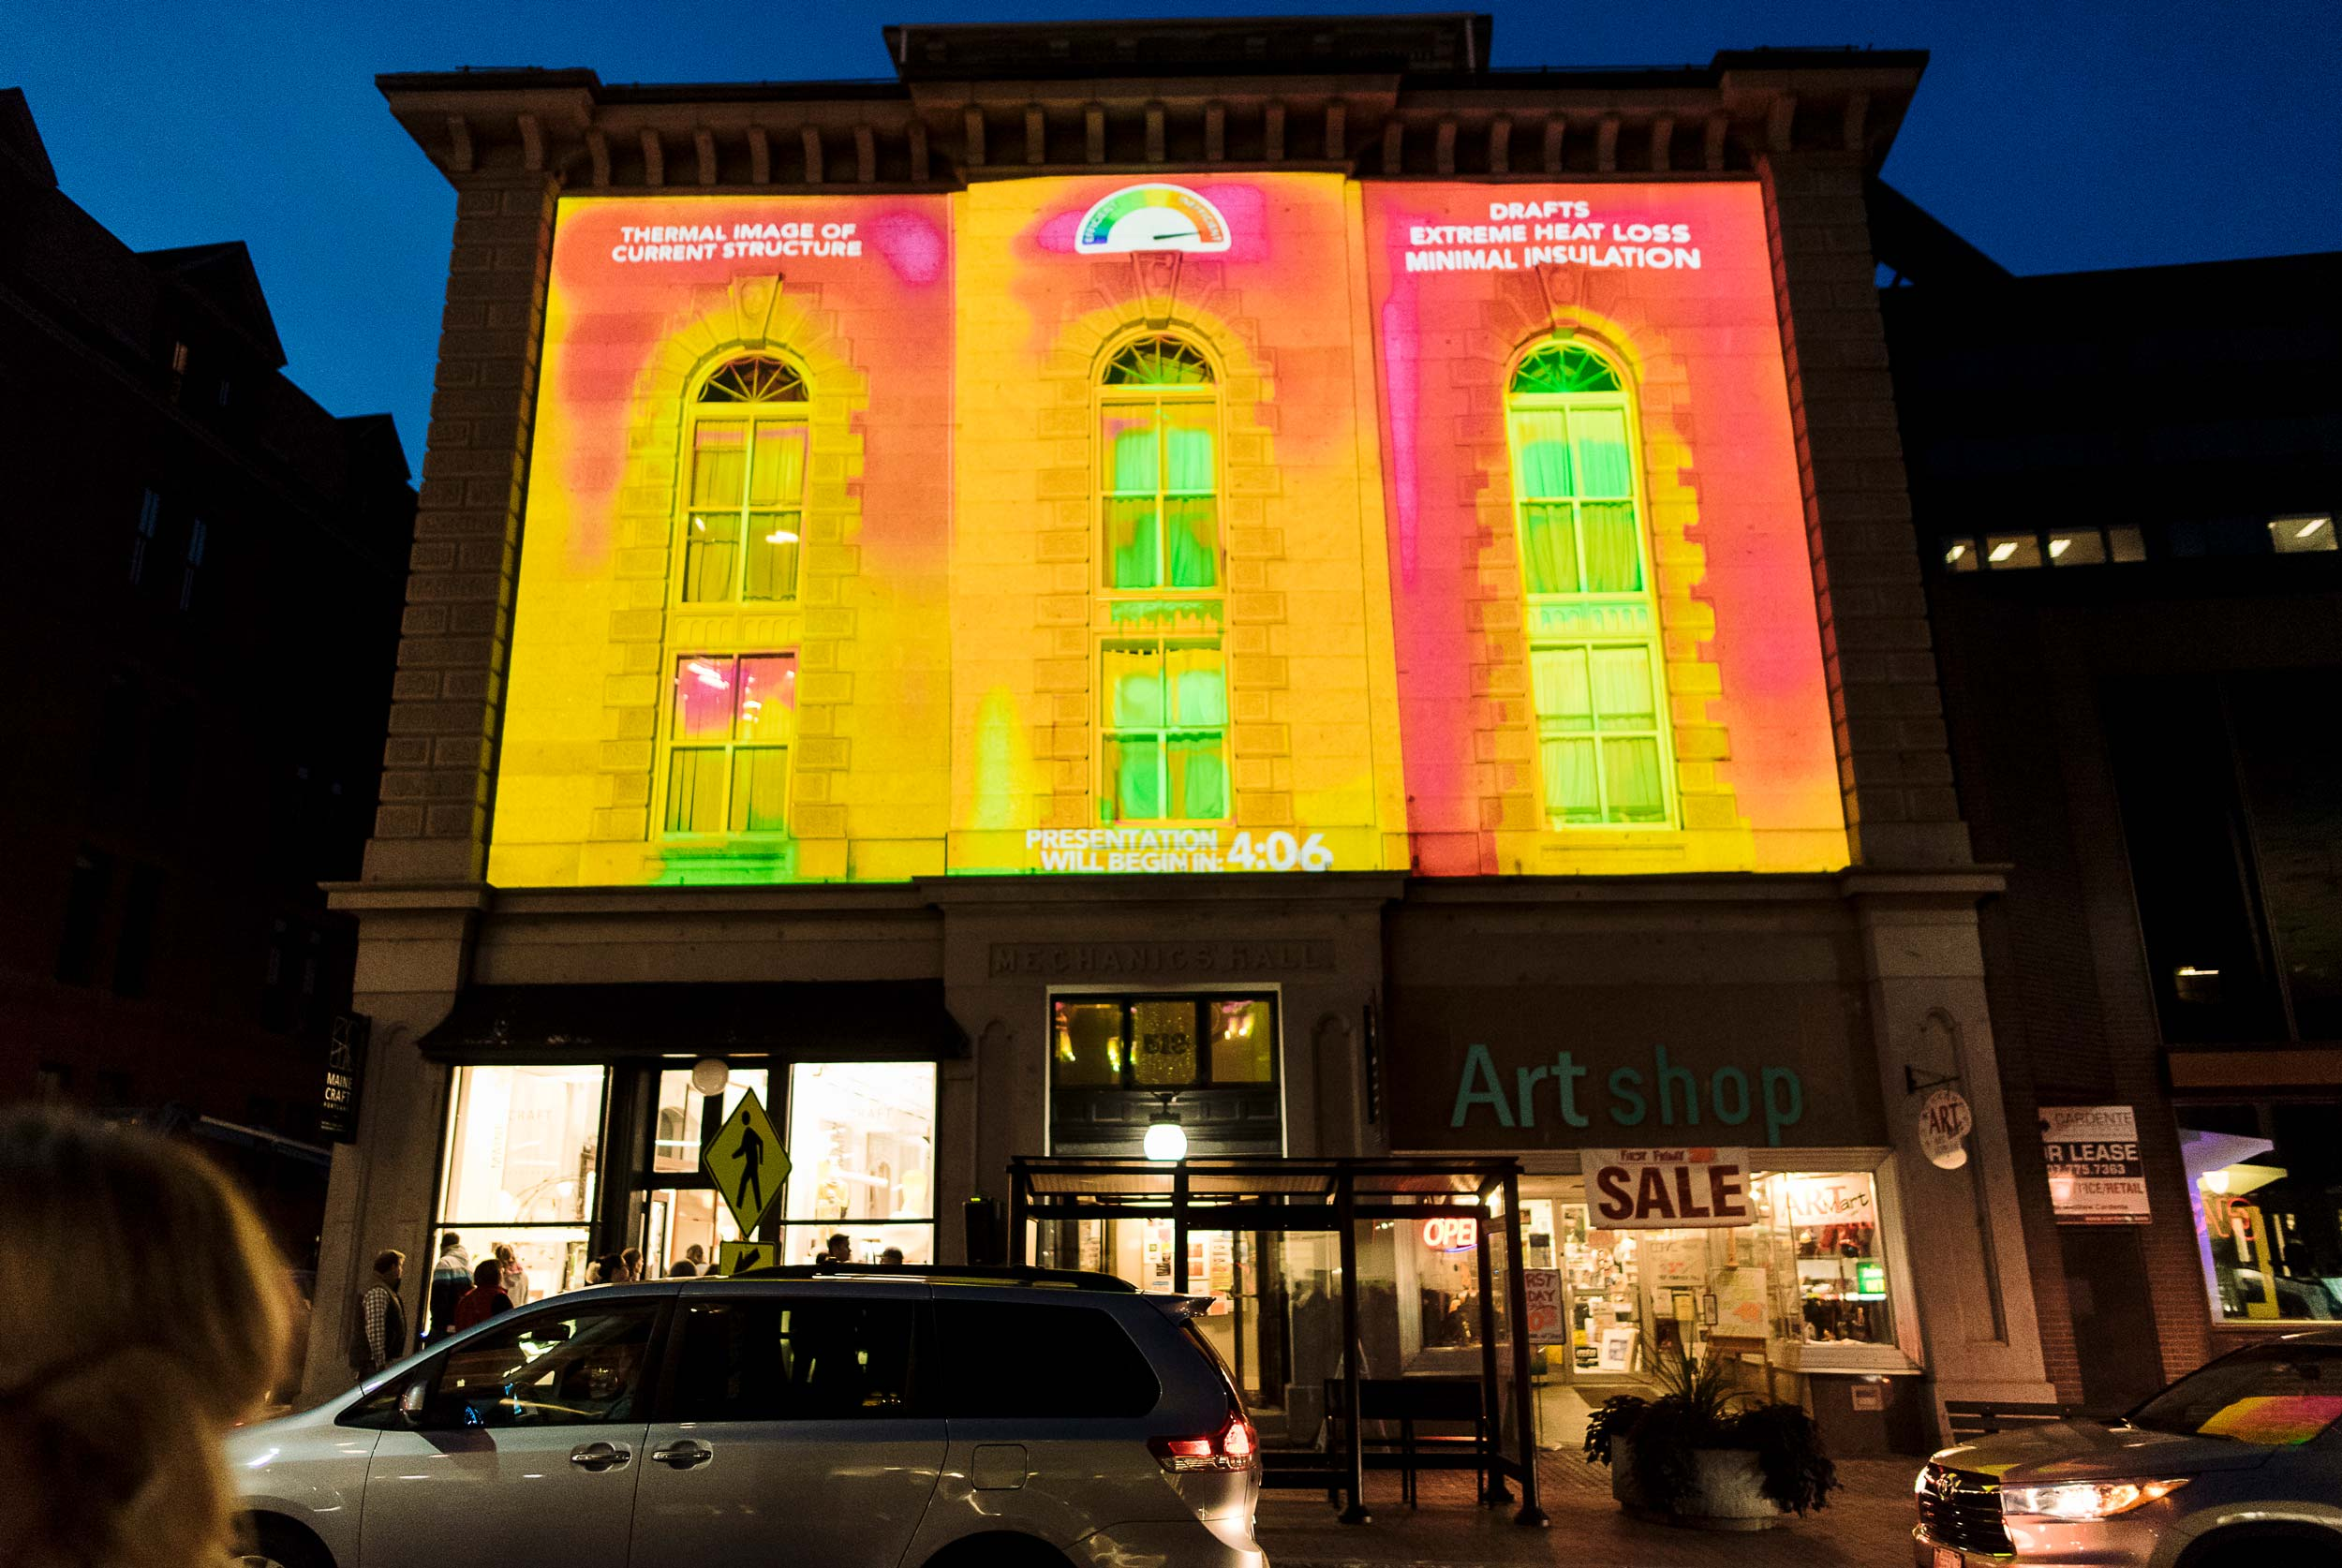 The passivhausMAINE event, made possible in cooperation with The VIA Agency, Headlight Audiovisual Inc., and MECA, combined thermographic images, playful animation, and music to create a festive and infor mative display. The thermographic imaging demonstrated the heat loss experienced by Mechanics' Hall.